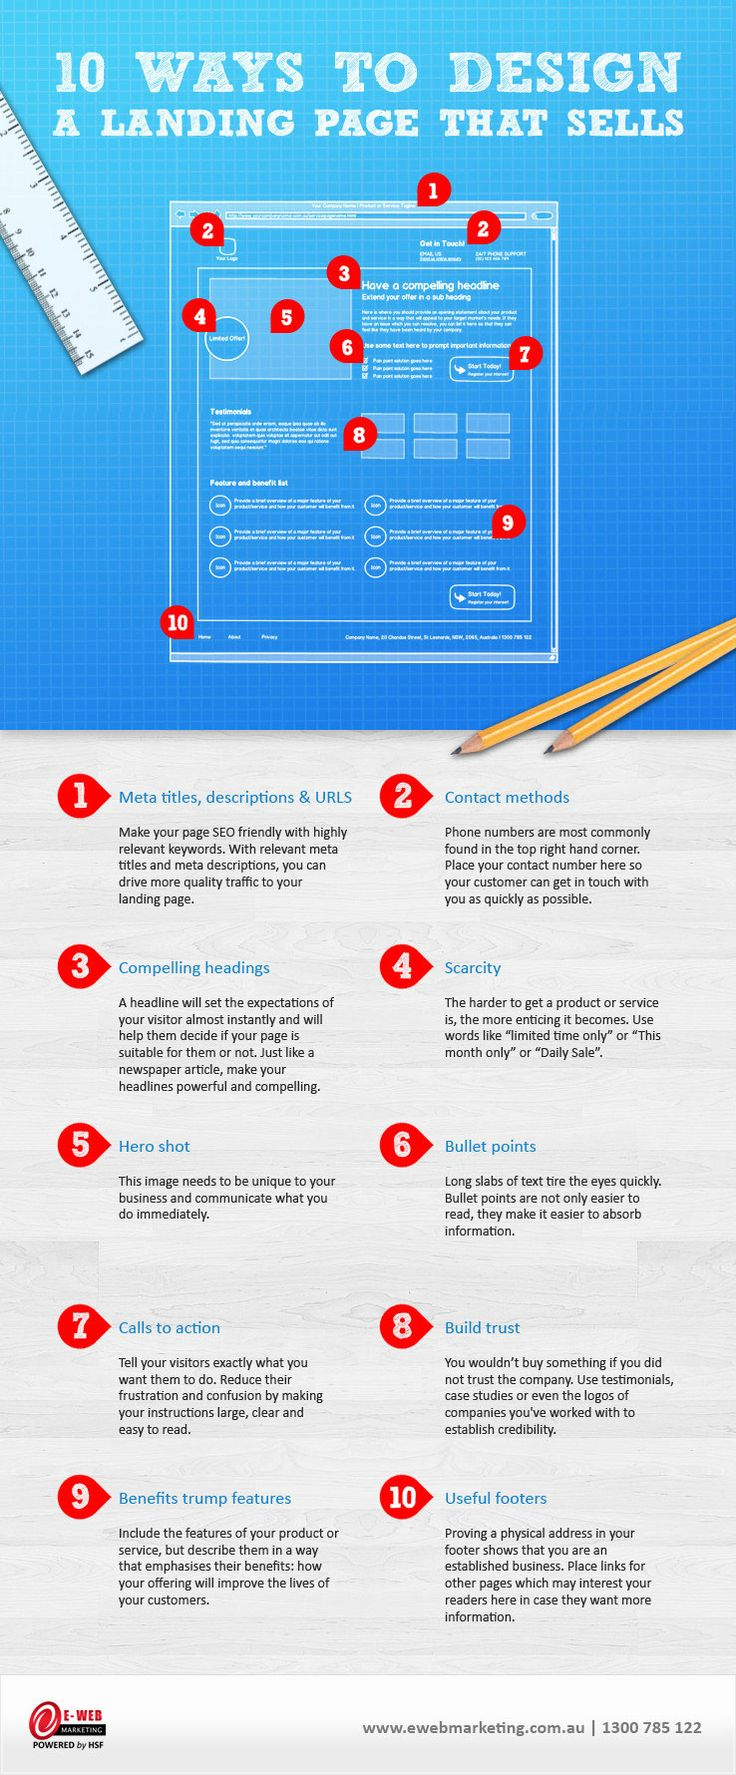 https://social-media-strategy-template.blogspot.com/ #SocialMedia #Howto Design a Landing Page That Sells - #Infographic Check out www.imedia.click for more amazing info on all things effective online marketing